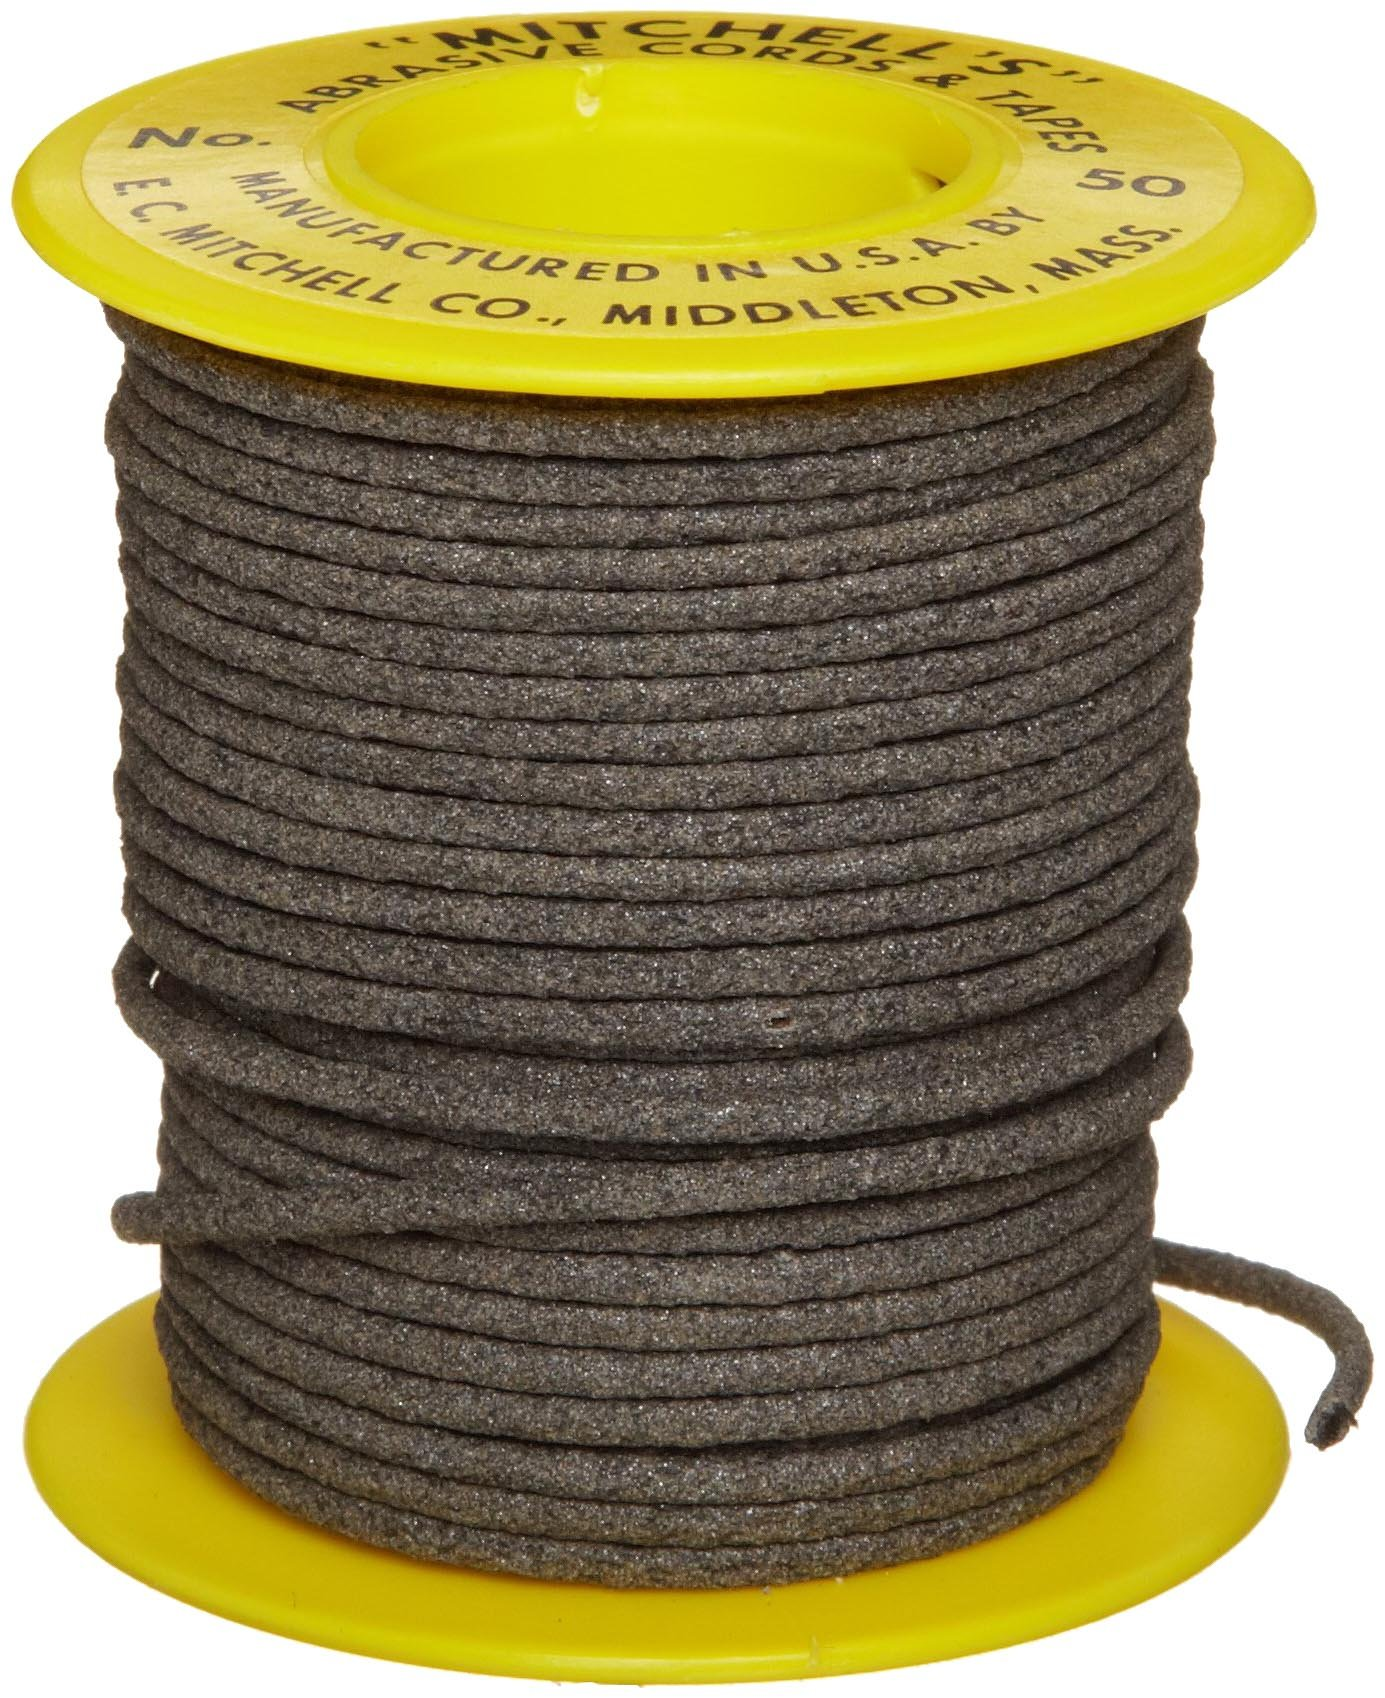 Mitchell Abrasives 50 Round Abrasive Cord, Aluminum Oxide 180 Grit .070'' Diameter x 50 Feet by Mitchell Abrasives